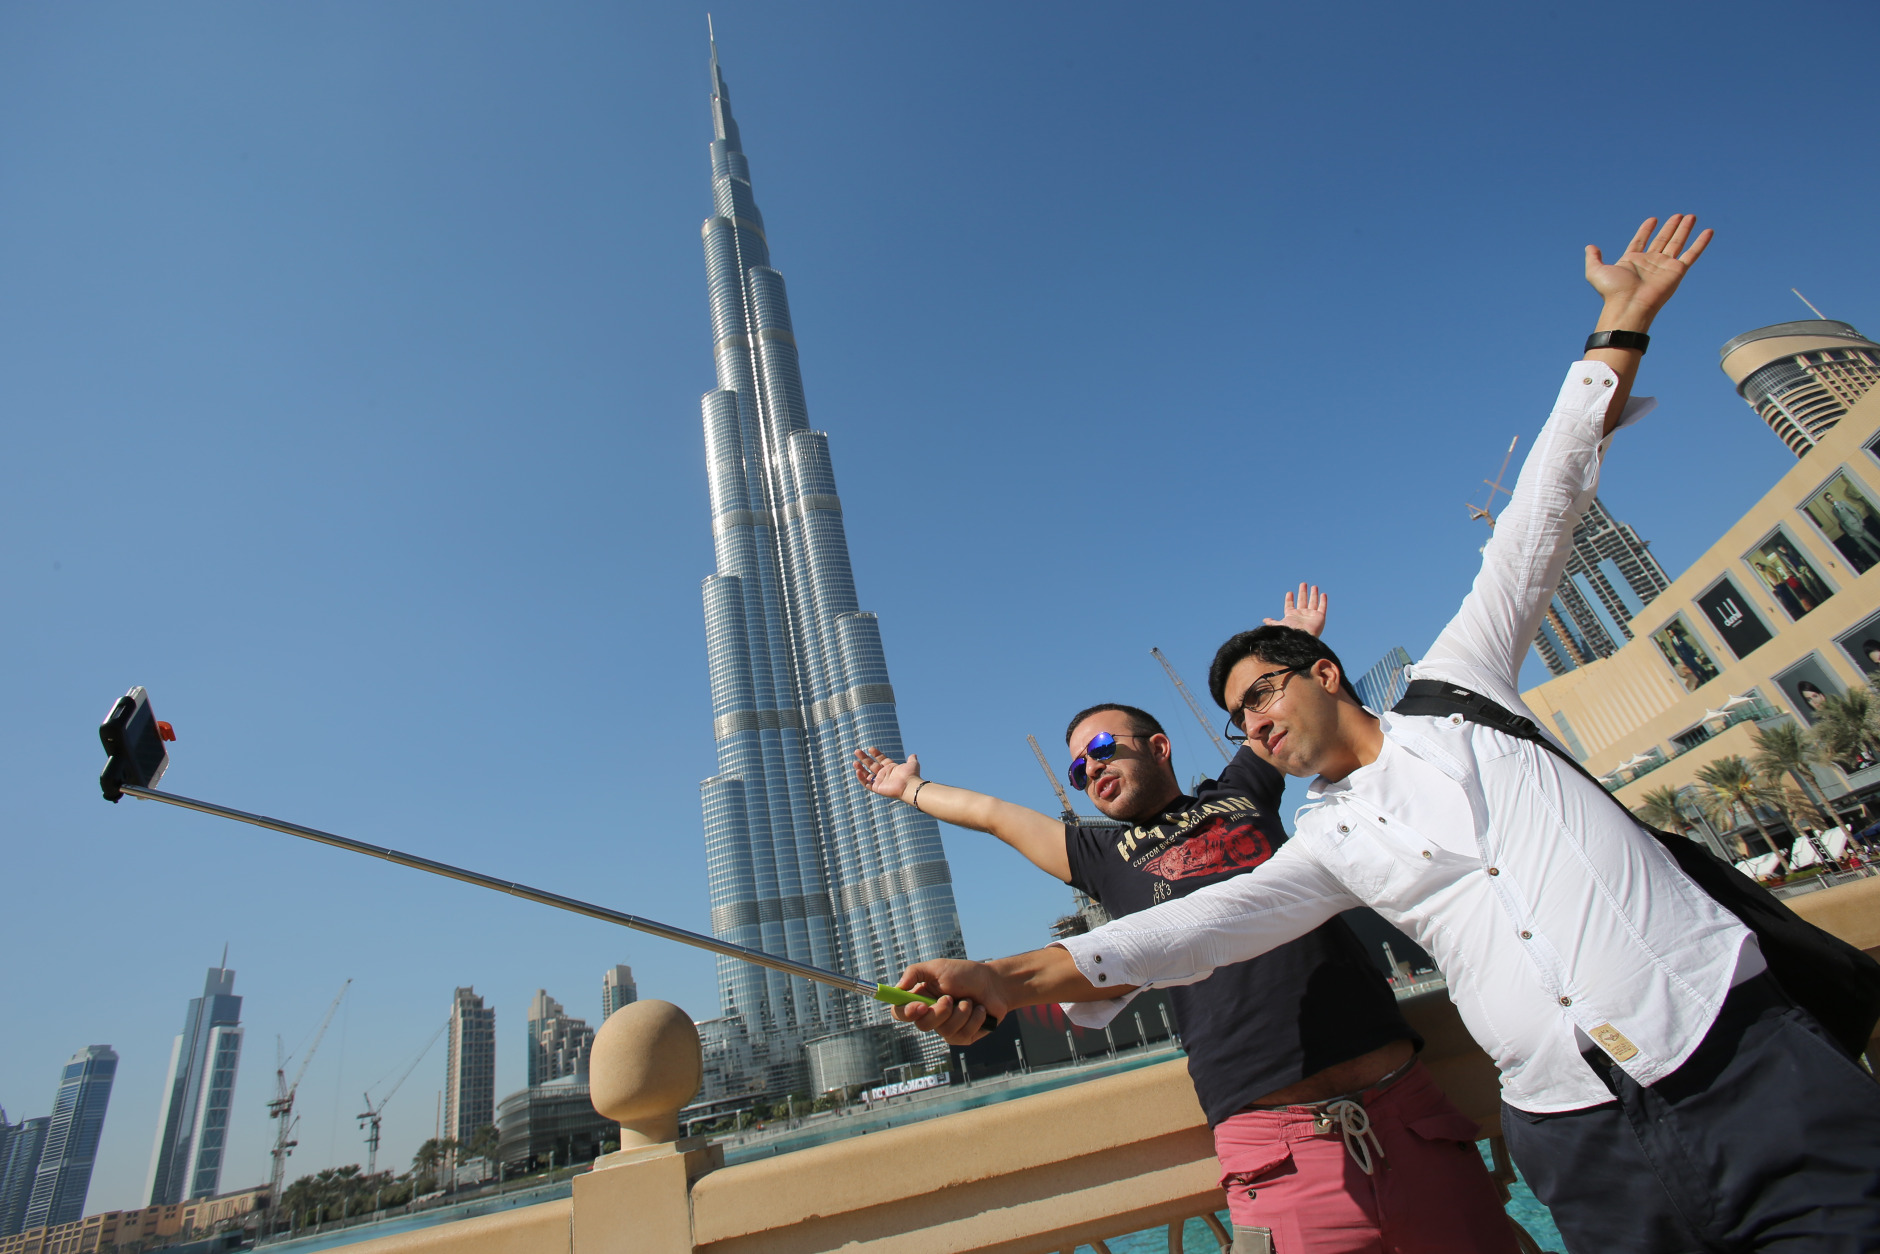 "In this Tuesday, Jan. 6, 2015 photo, Rasul Alekberov holds a selfie stick next to his friend Gudrat Aghayev both tourists from Republic of Azerbaijan while they take a selfie in front of ""Burj Khalifa"", world's tallest tower in Dubai, United Arab Emirates. Selfie sticks have become popular among tourists because you don't have to ask strangers to take your picture, and you can capture a wide view in a selfie without showing your arm. (AP Photo/Kamran Jebreili)"